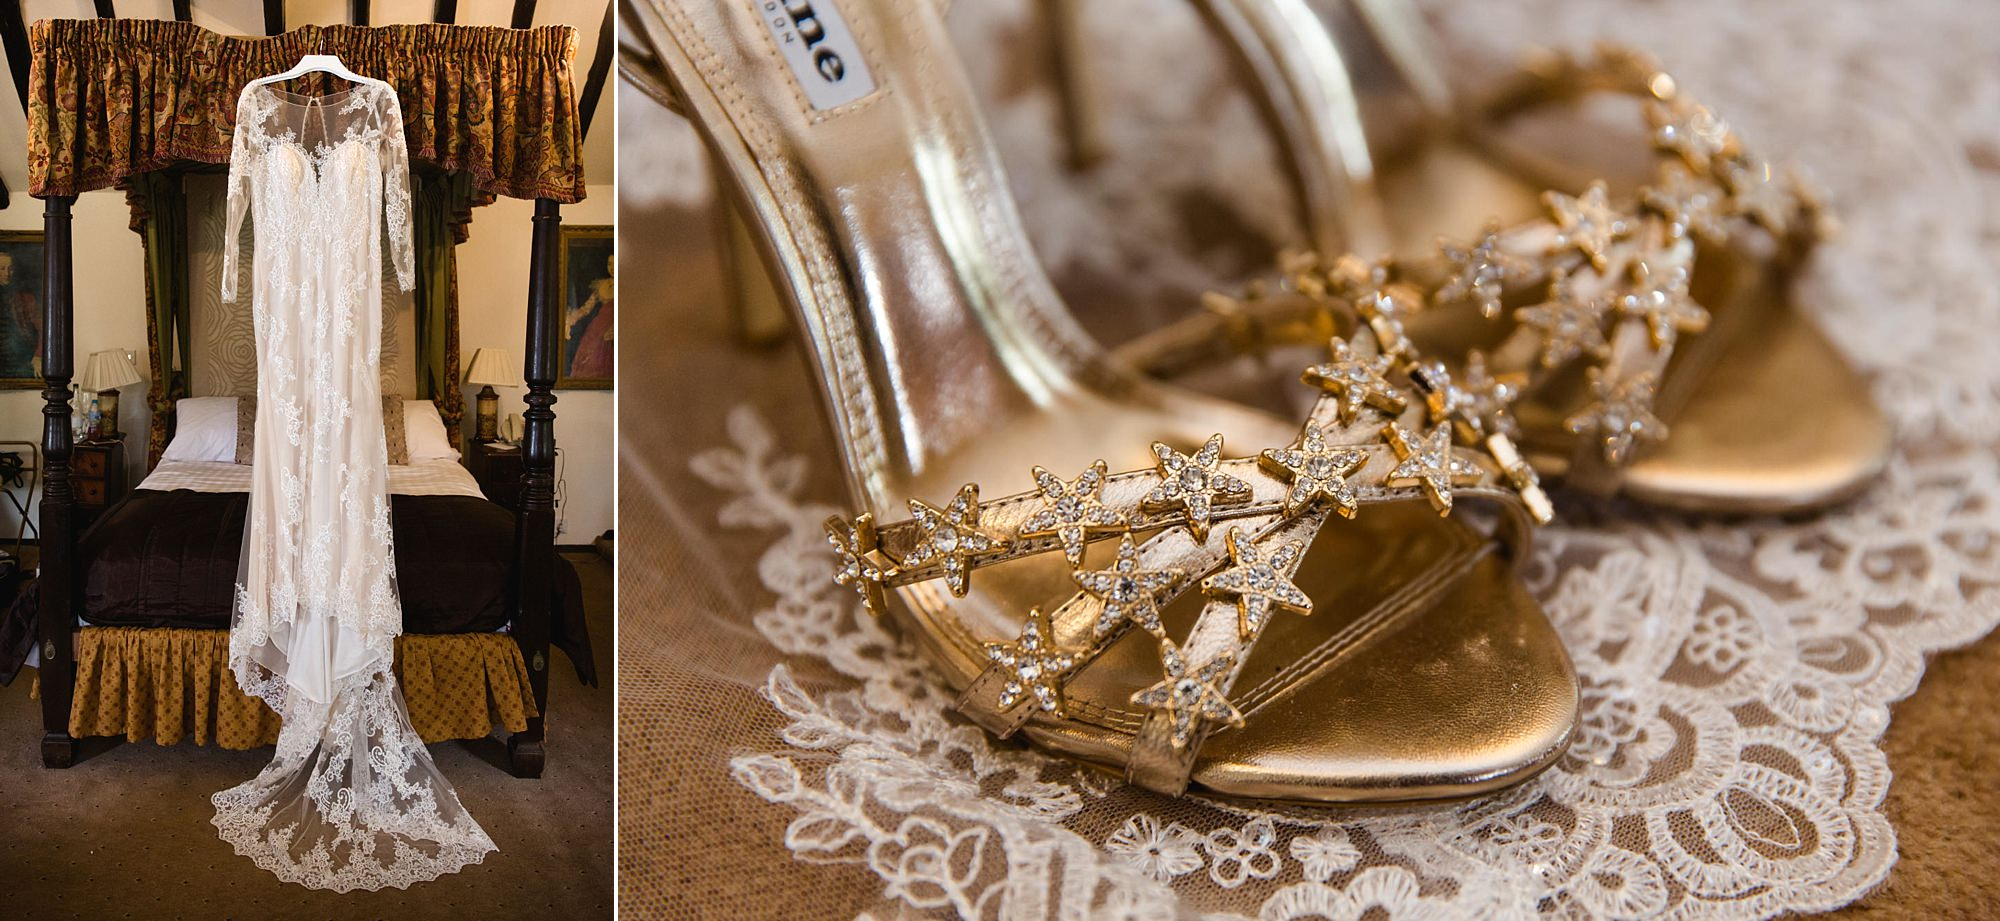 wedding dress and star detailed shoes for humanist bride